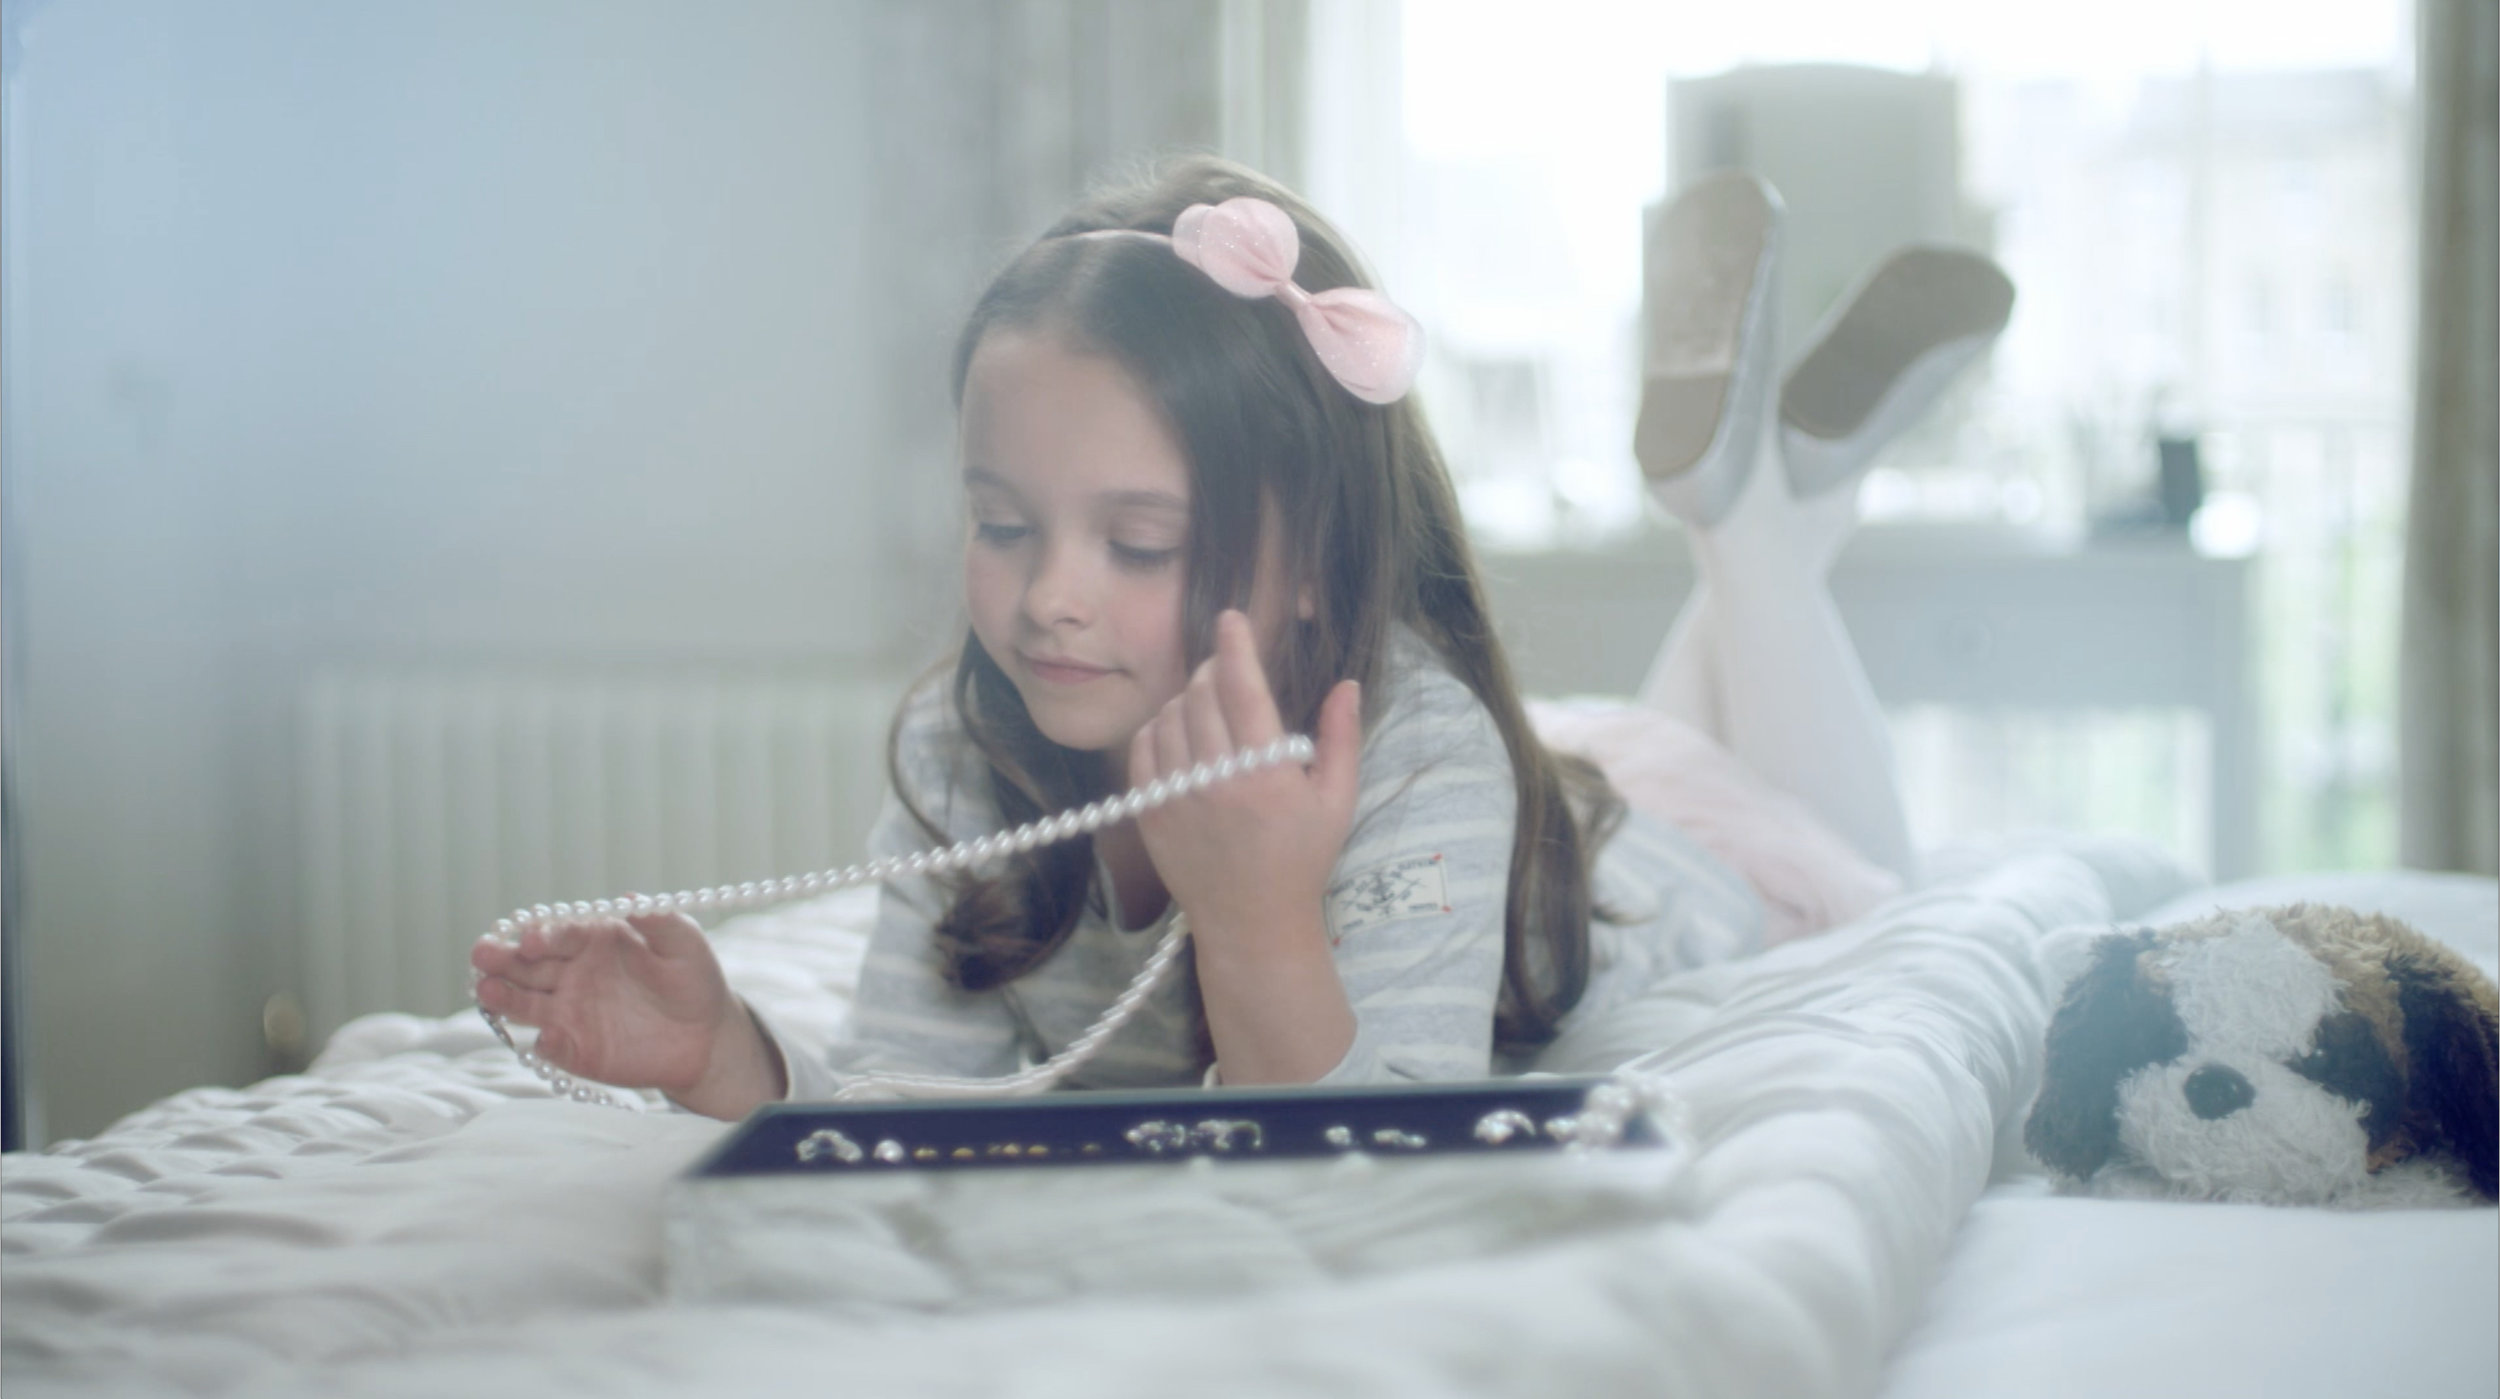 LAING: IT'S A FAMILY THING   Commercial for Laing Edinburgh Airing on Sky Television.